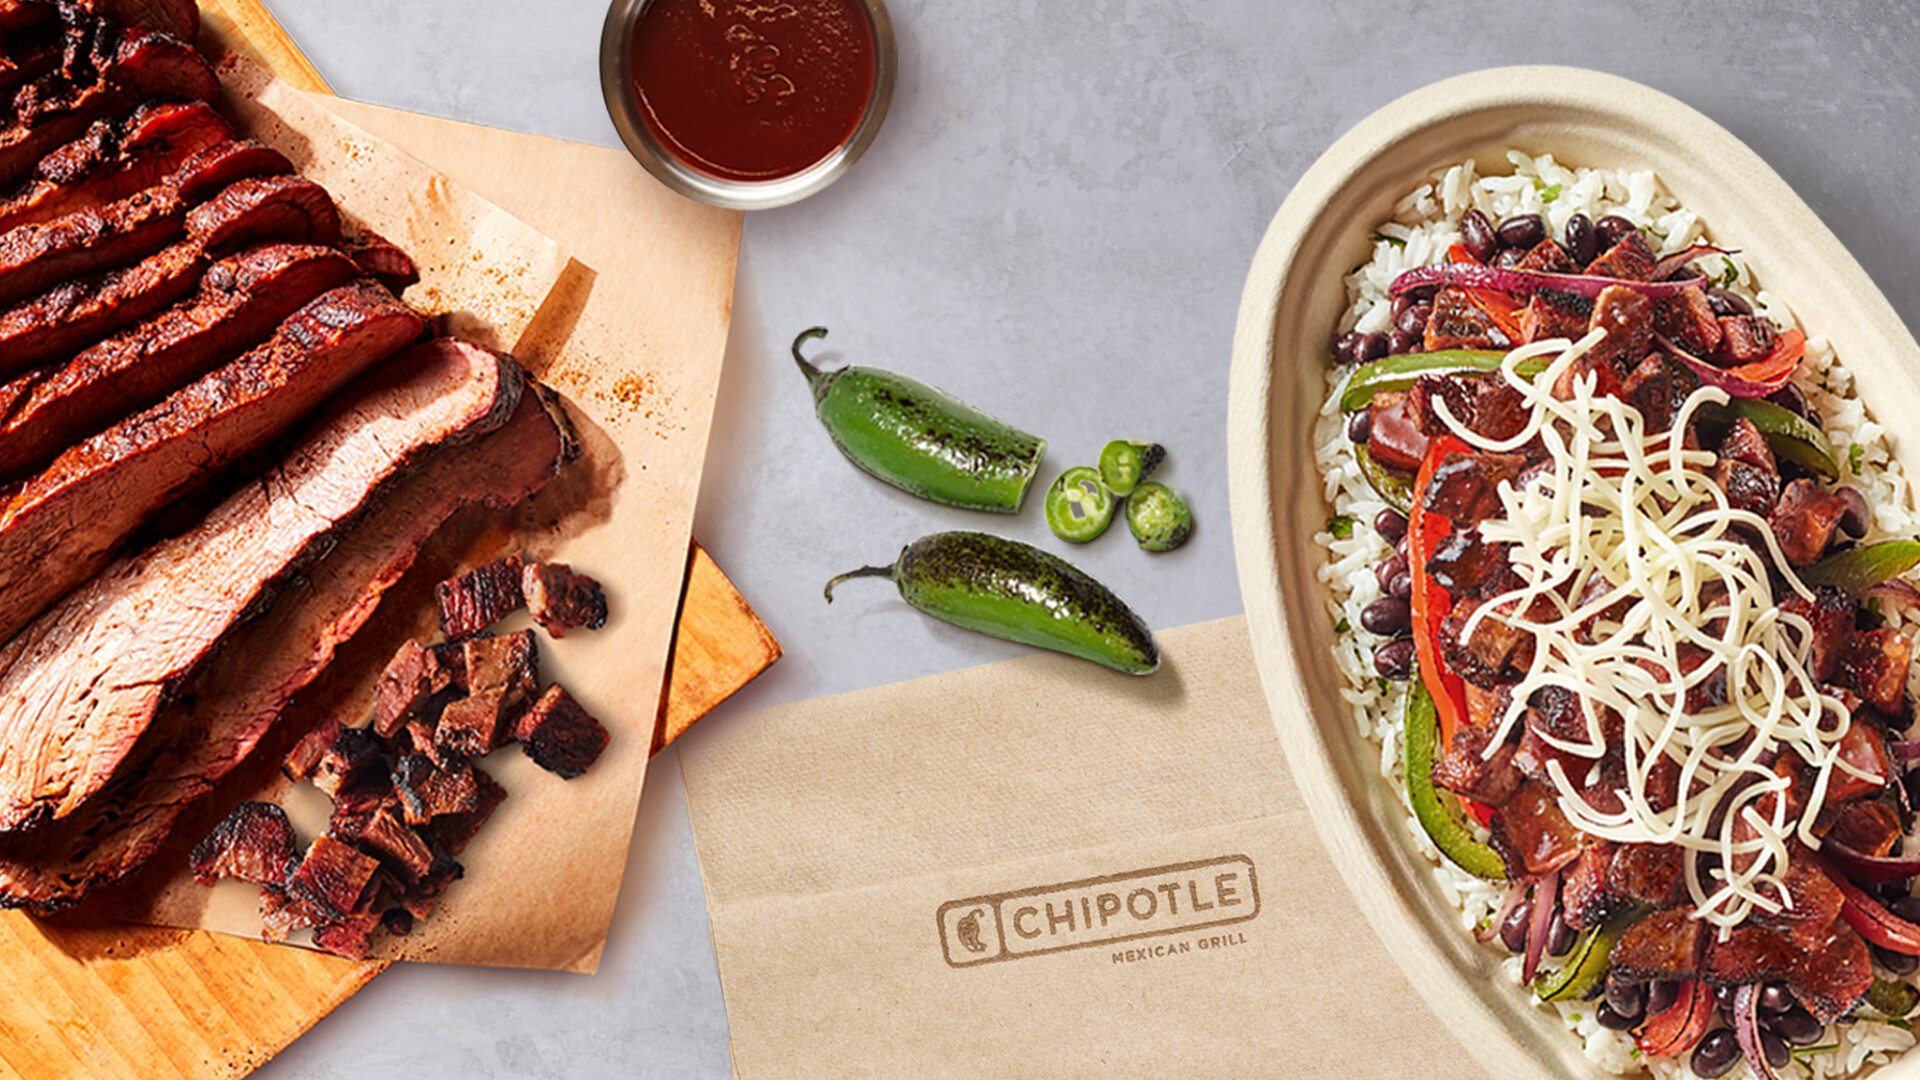 Chipotle is adding a new meat to its menu